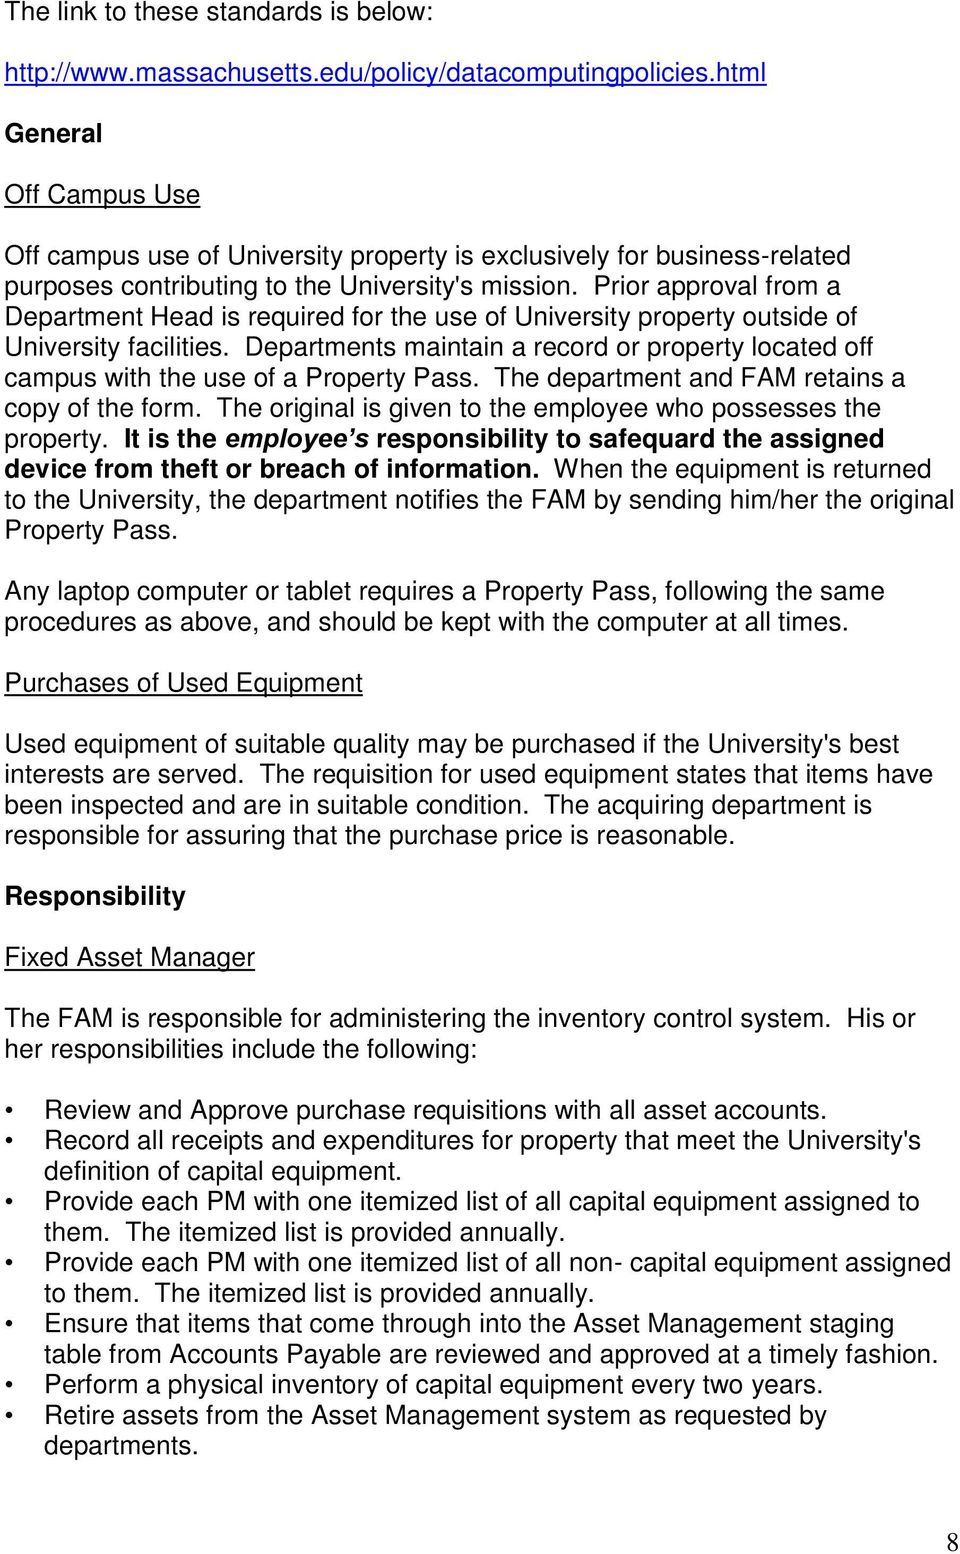 Prior approval from a Department Head is required for the use of University property outside of University facilities.